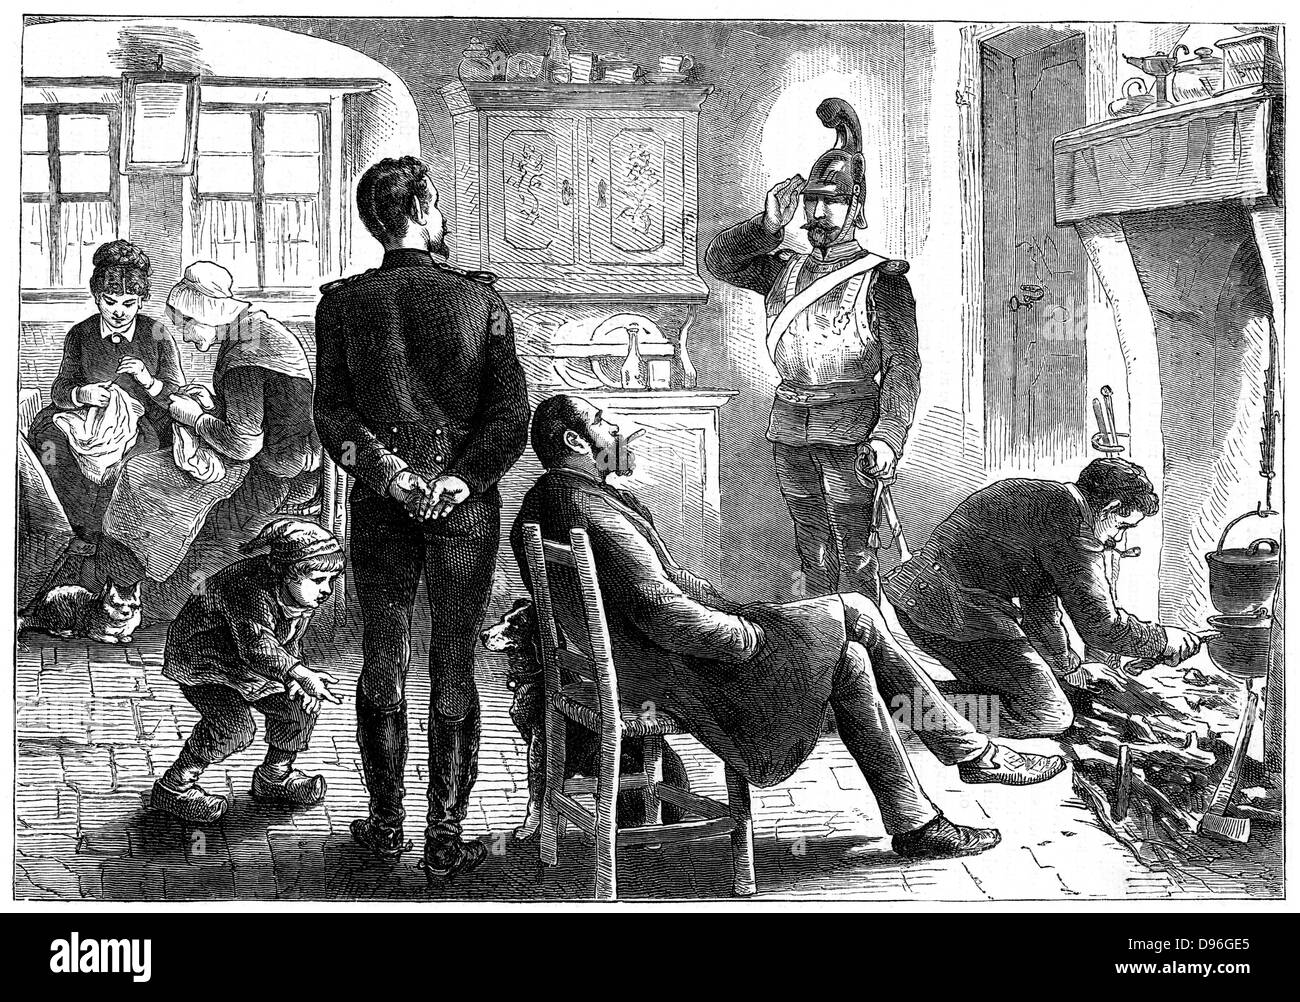 Franco-Prussian War 1870-1871: In Possession. Prussian officers billeted on a French family, December 1871. Engraving - Stock Image